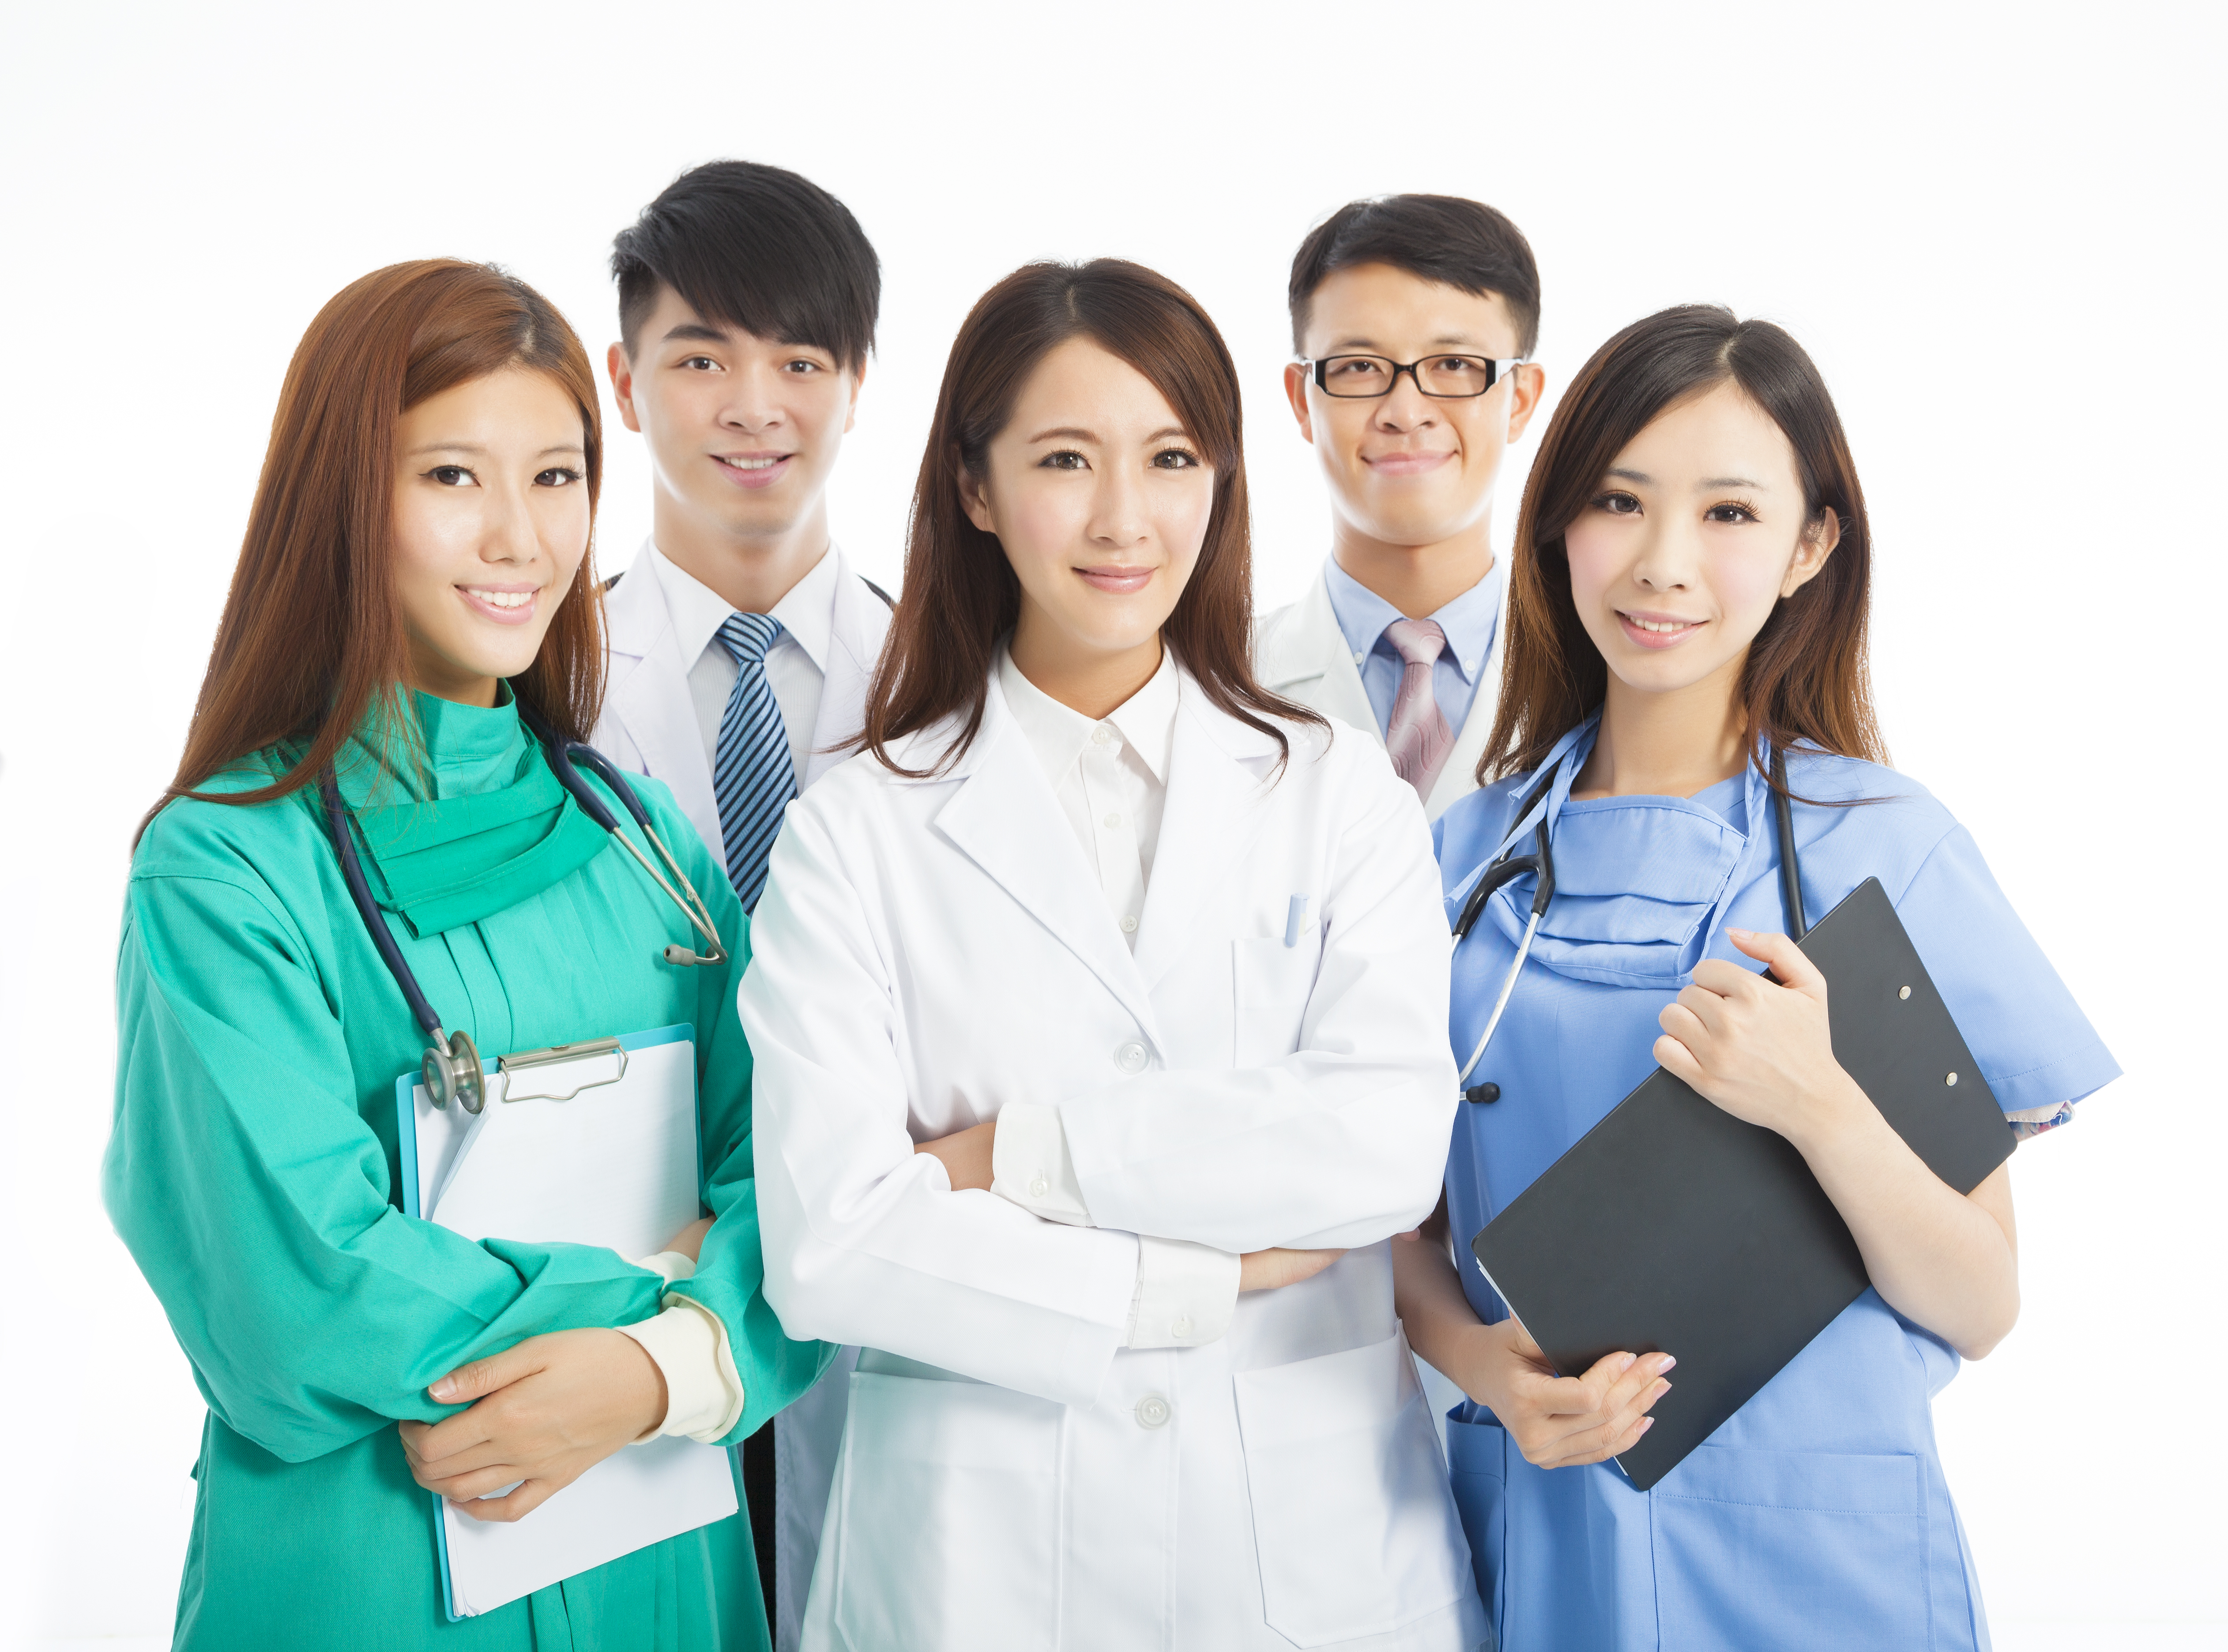 bigstock-Professional-Medical-Doctor-Te-72465052.jpg